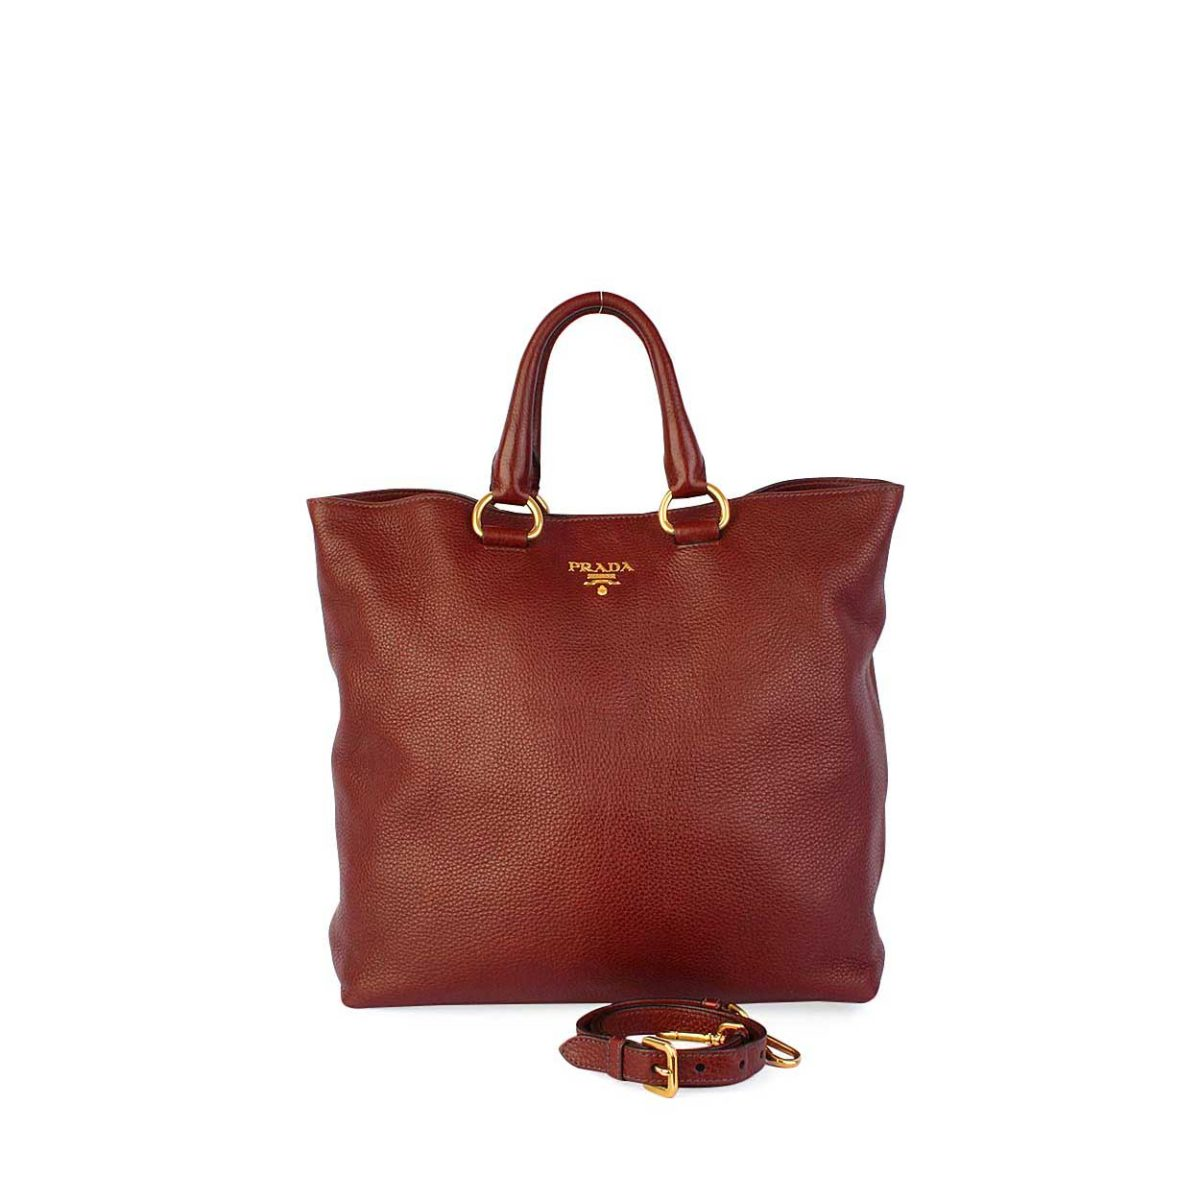 0a820008fce2 PRADA Rubino Vitello Daino Leather Shopping Tote Brown